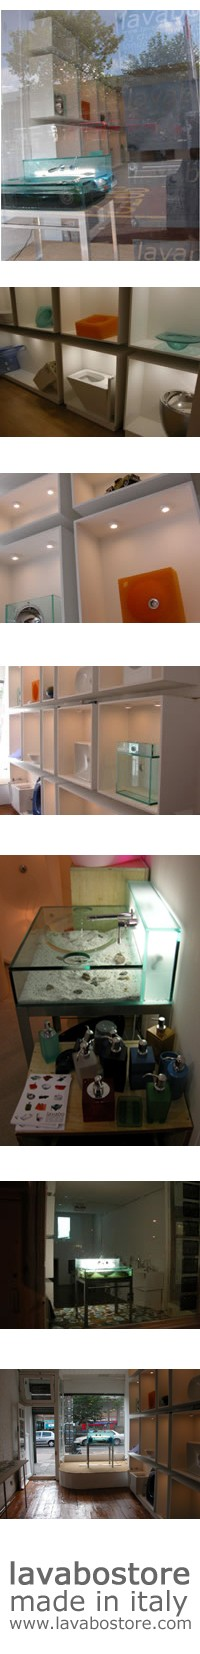 Bathrooms, Bathroom Vessel Sinks, Toilets, Baths, Faucets, Accessories